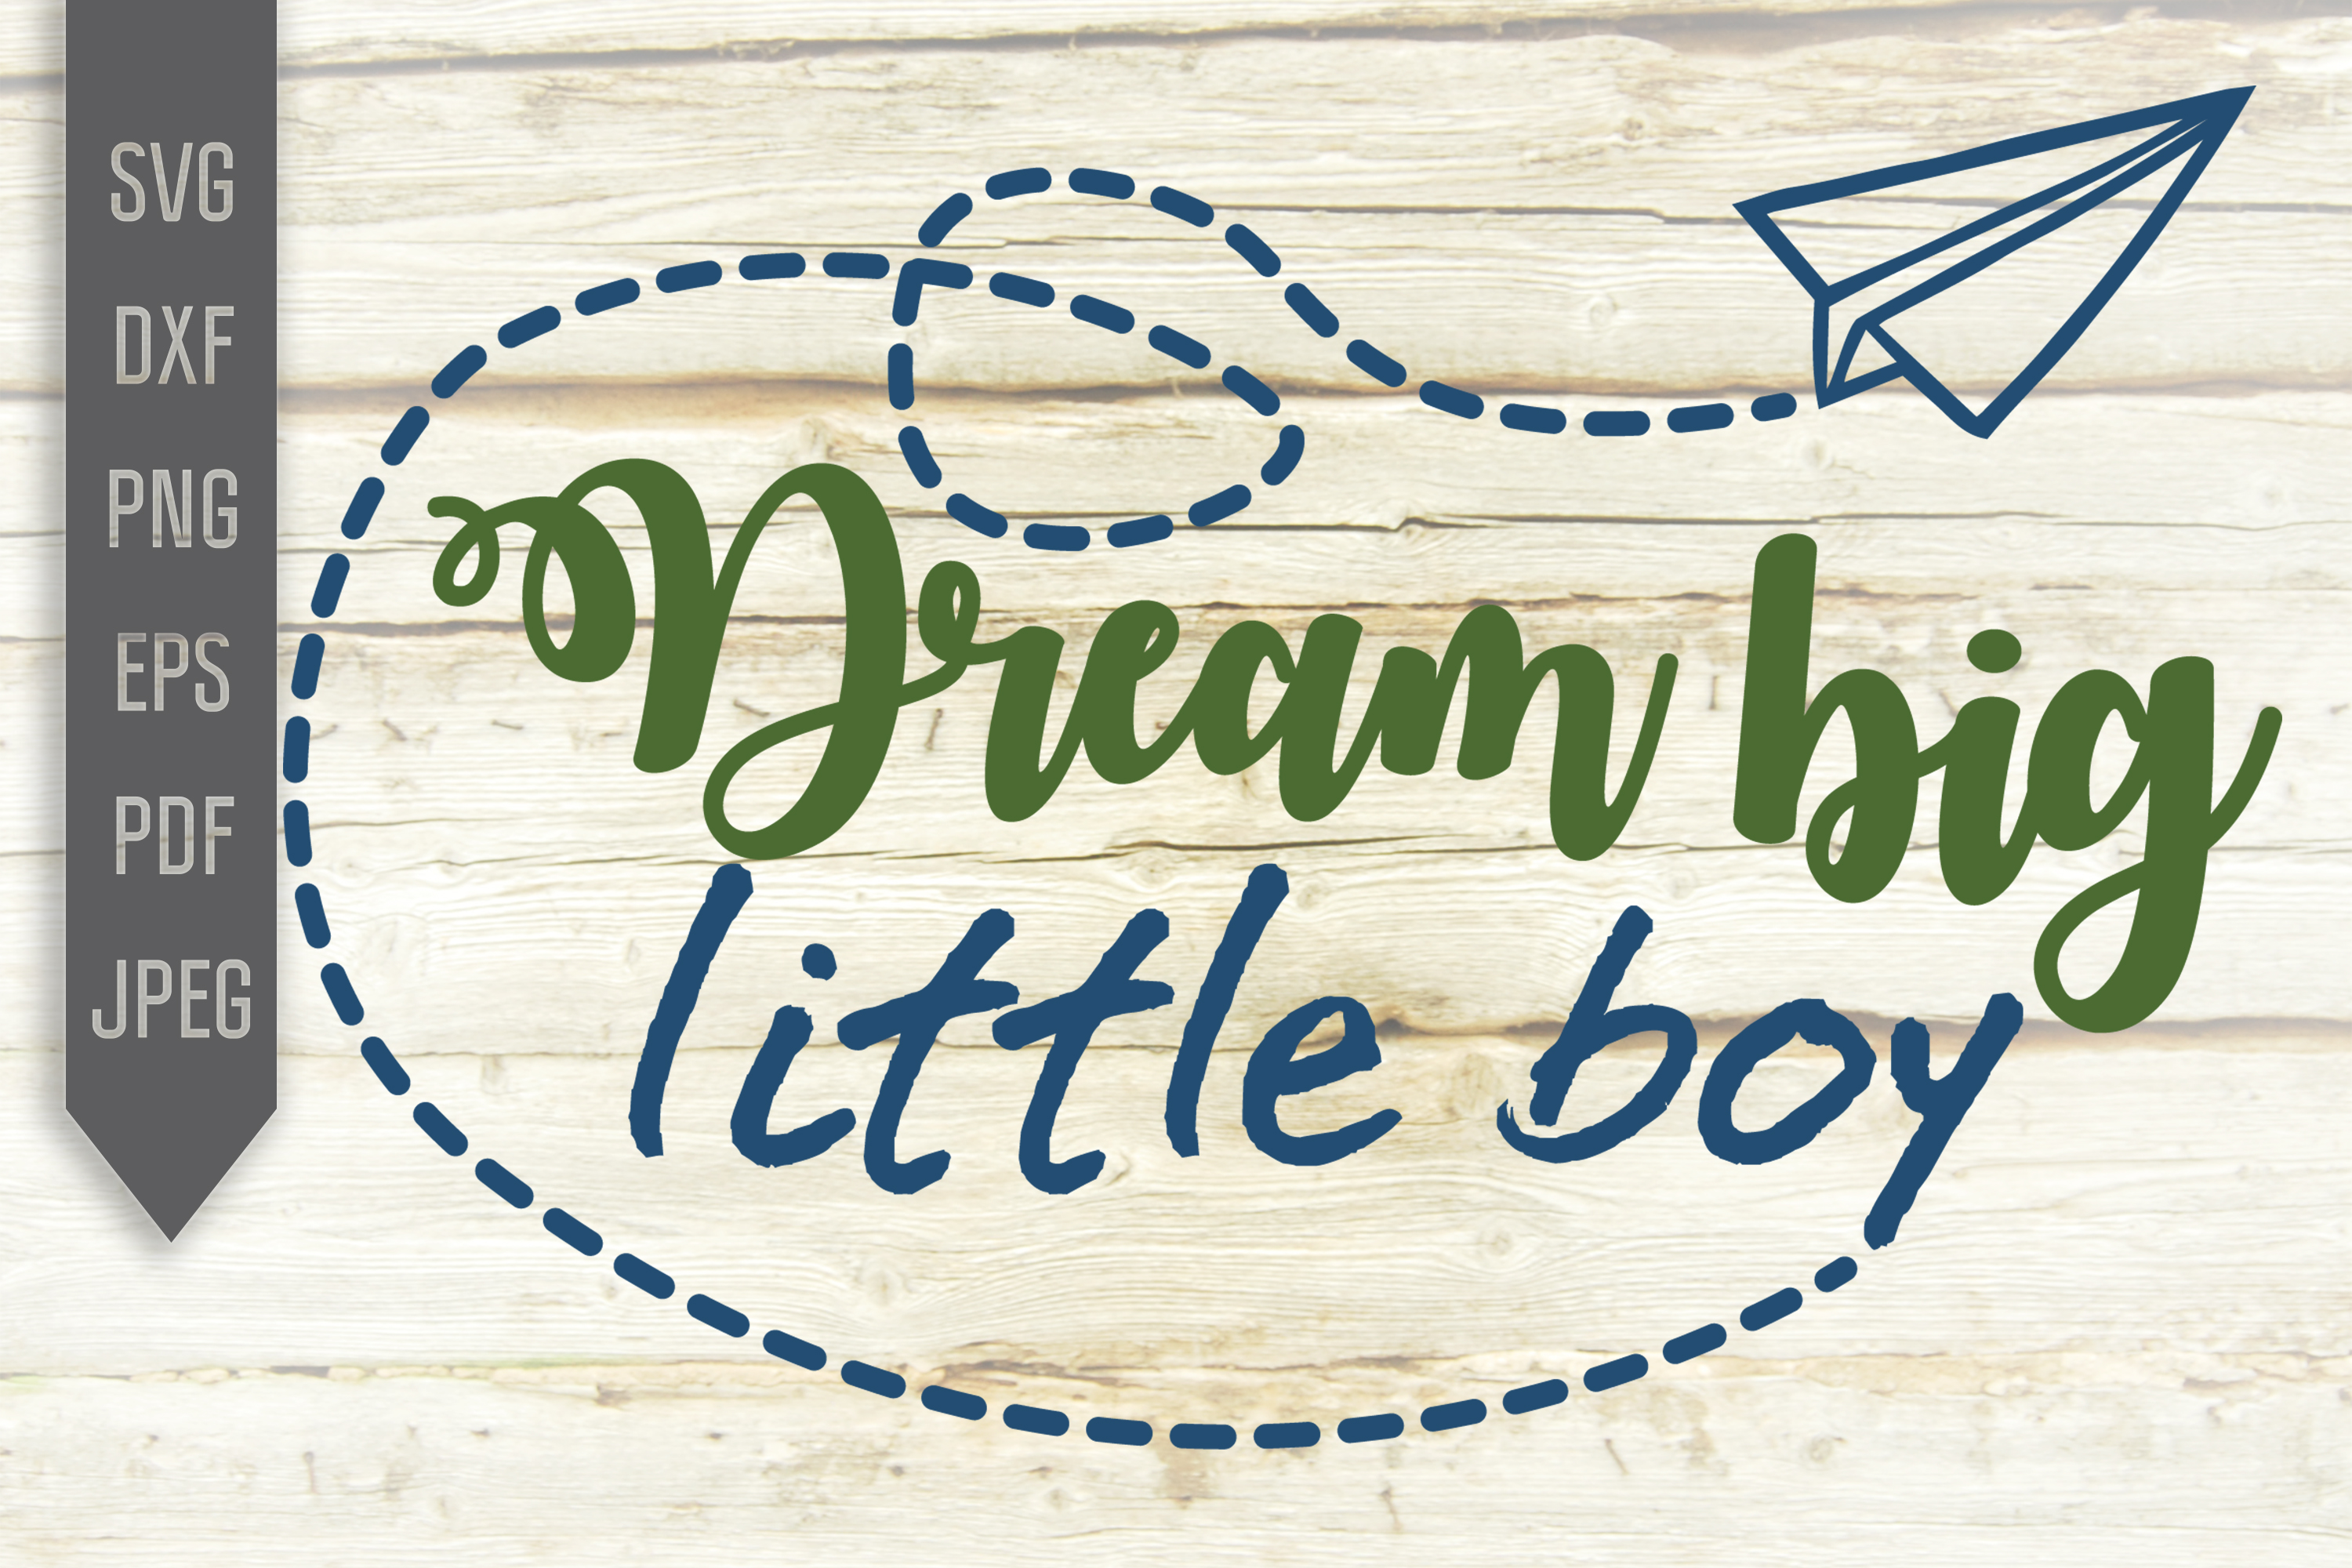 Download Free Dream Big Little Boy Svg Dreamer Design Graphic By for Cricut Explore, Silhouette and other cutting machines.